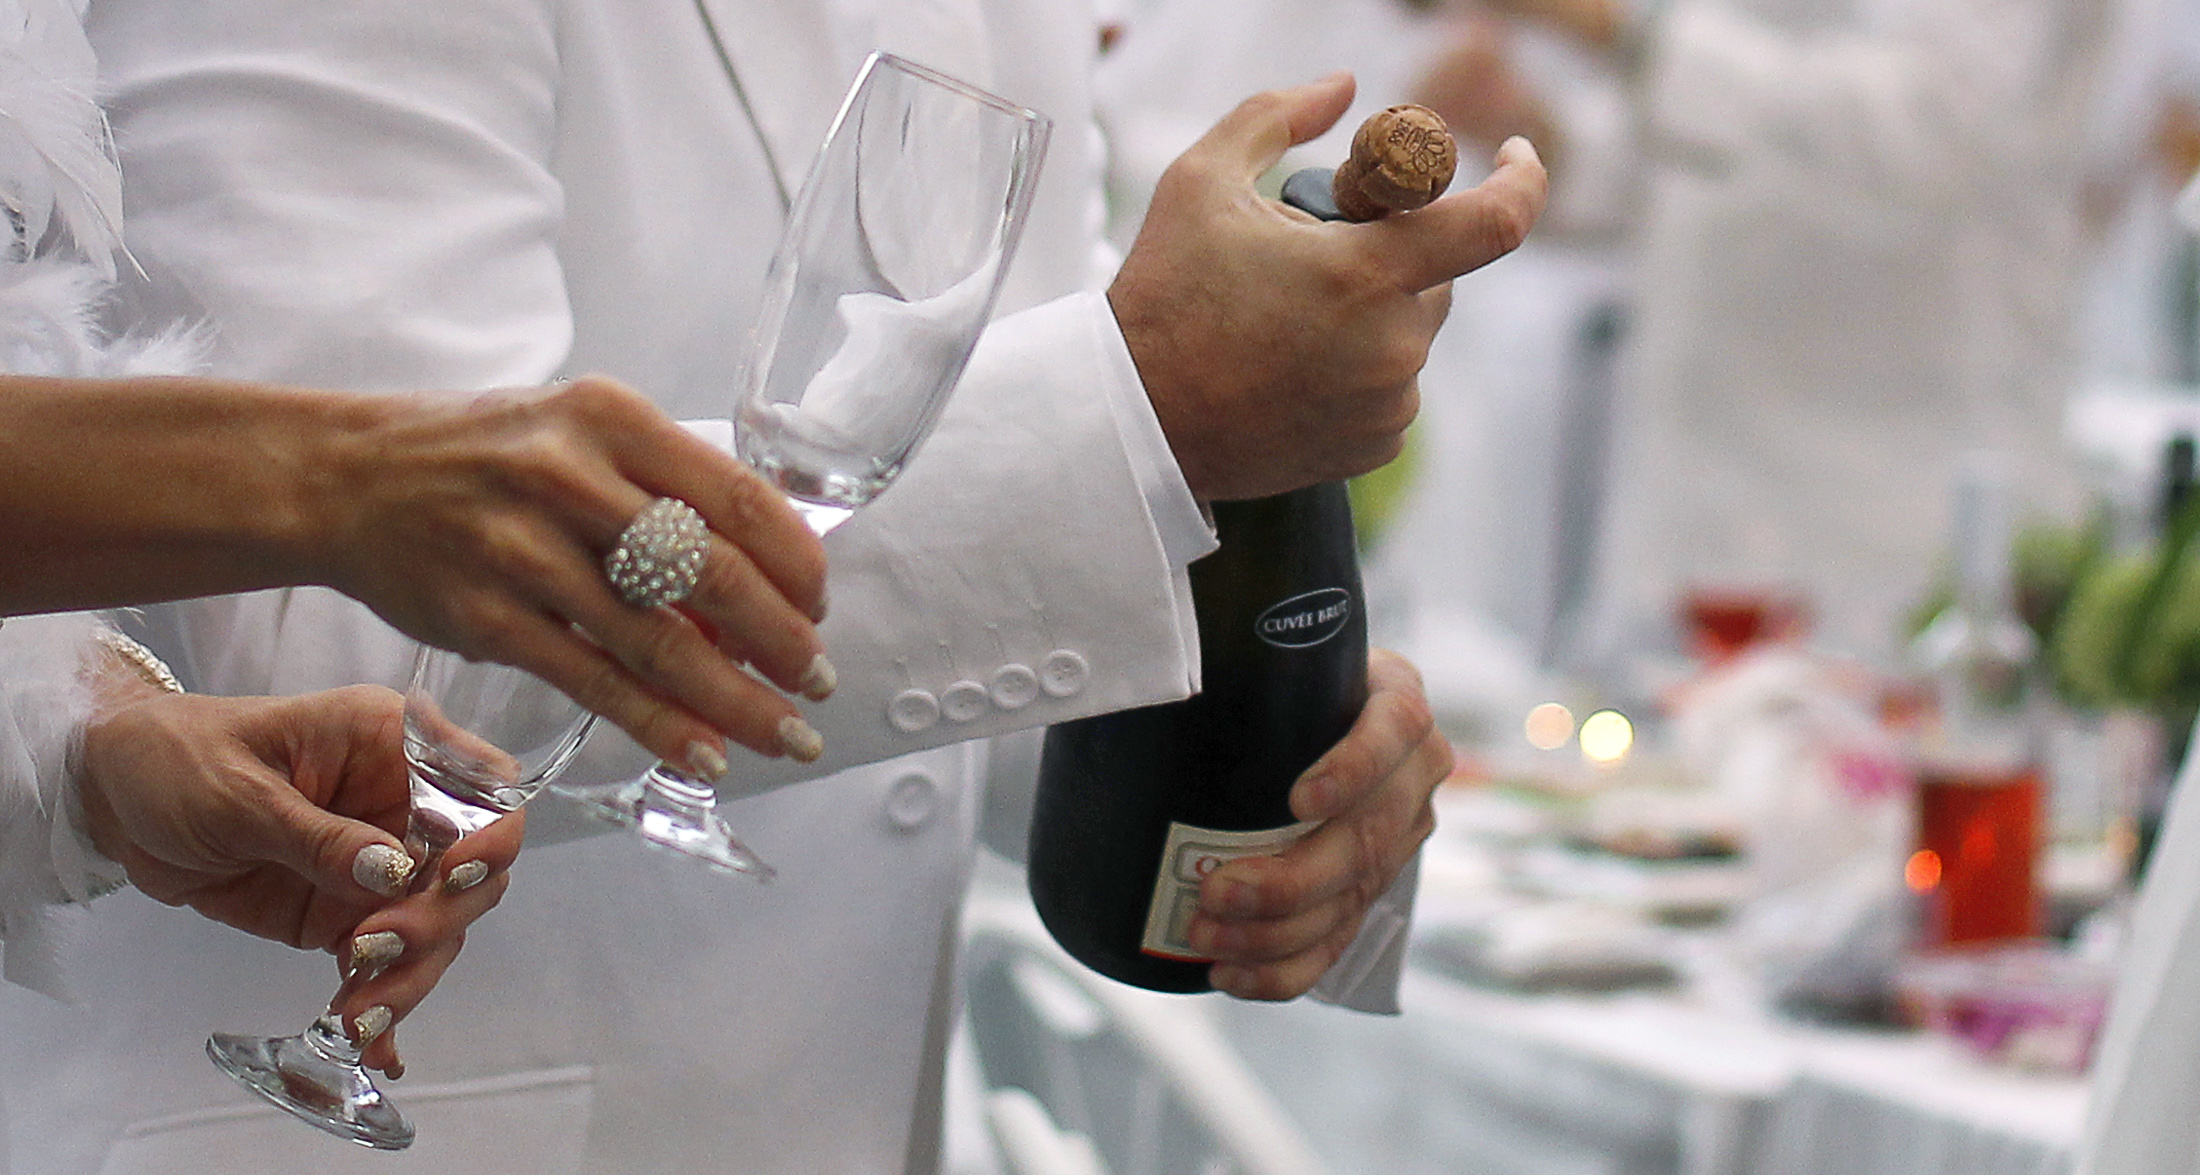 A man corks a champagne bottle as he participates in the White Dinner in Quebec City August 18, 2011. Guests are required to be dressed in white and bring their own food, drink and cutlery. According to the organisers, the event, which was held for the first time in Quebec City, attracted close to 700 people. REUTERS/Mathieu Belanger (CANADA - Tags: SOCIETY) - GM1E78J0TN701